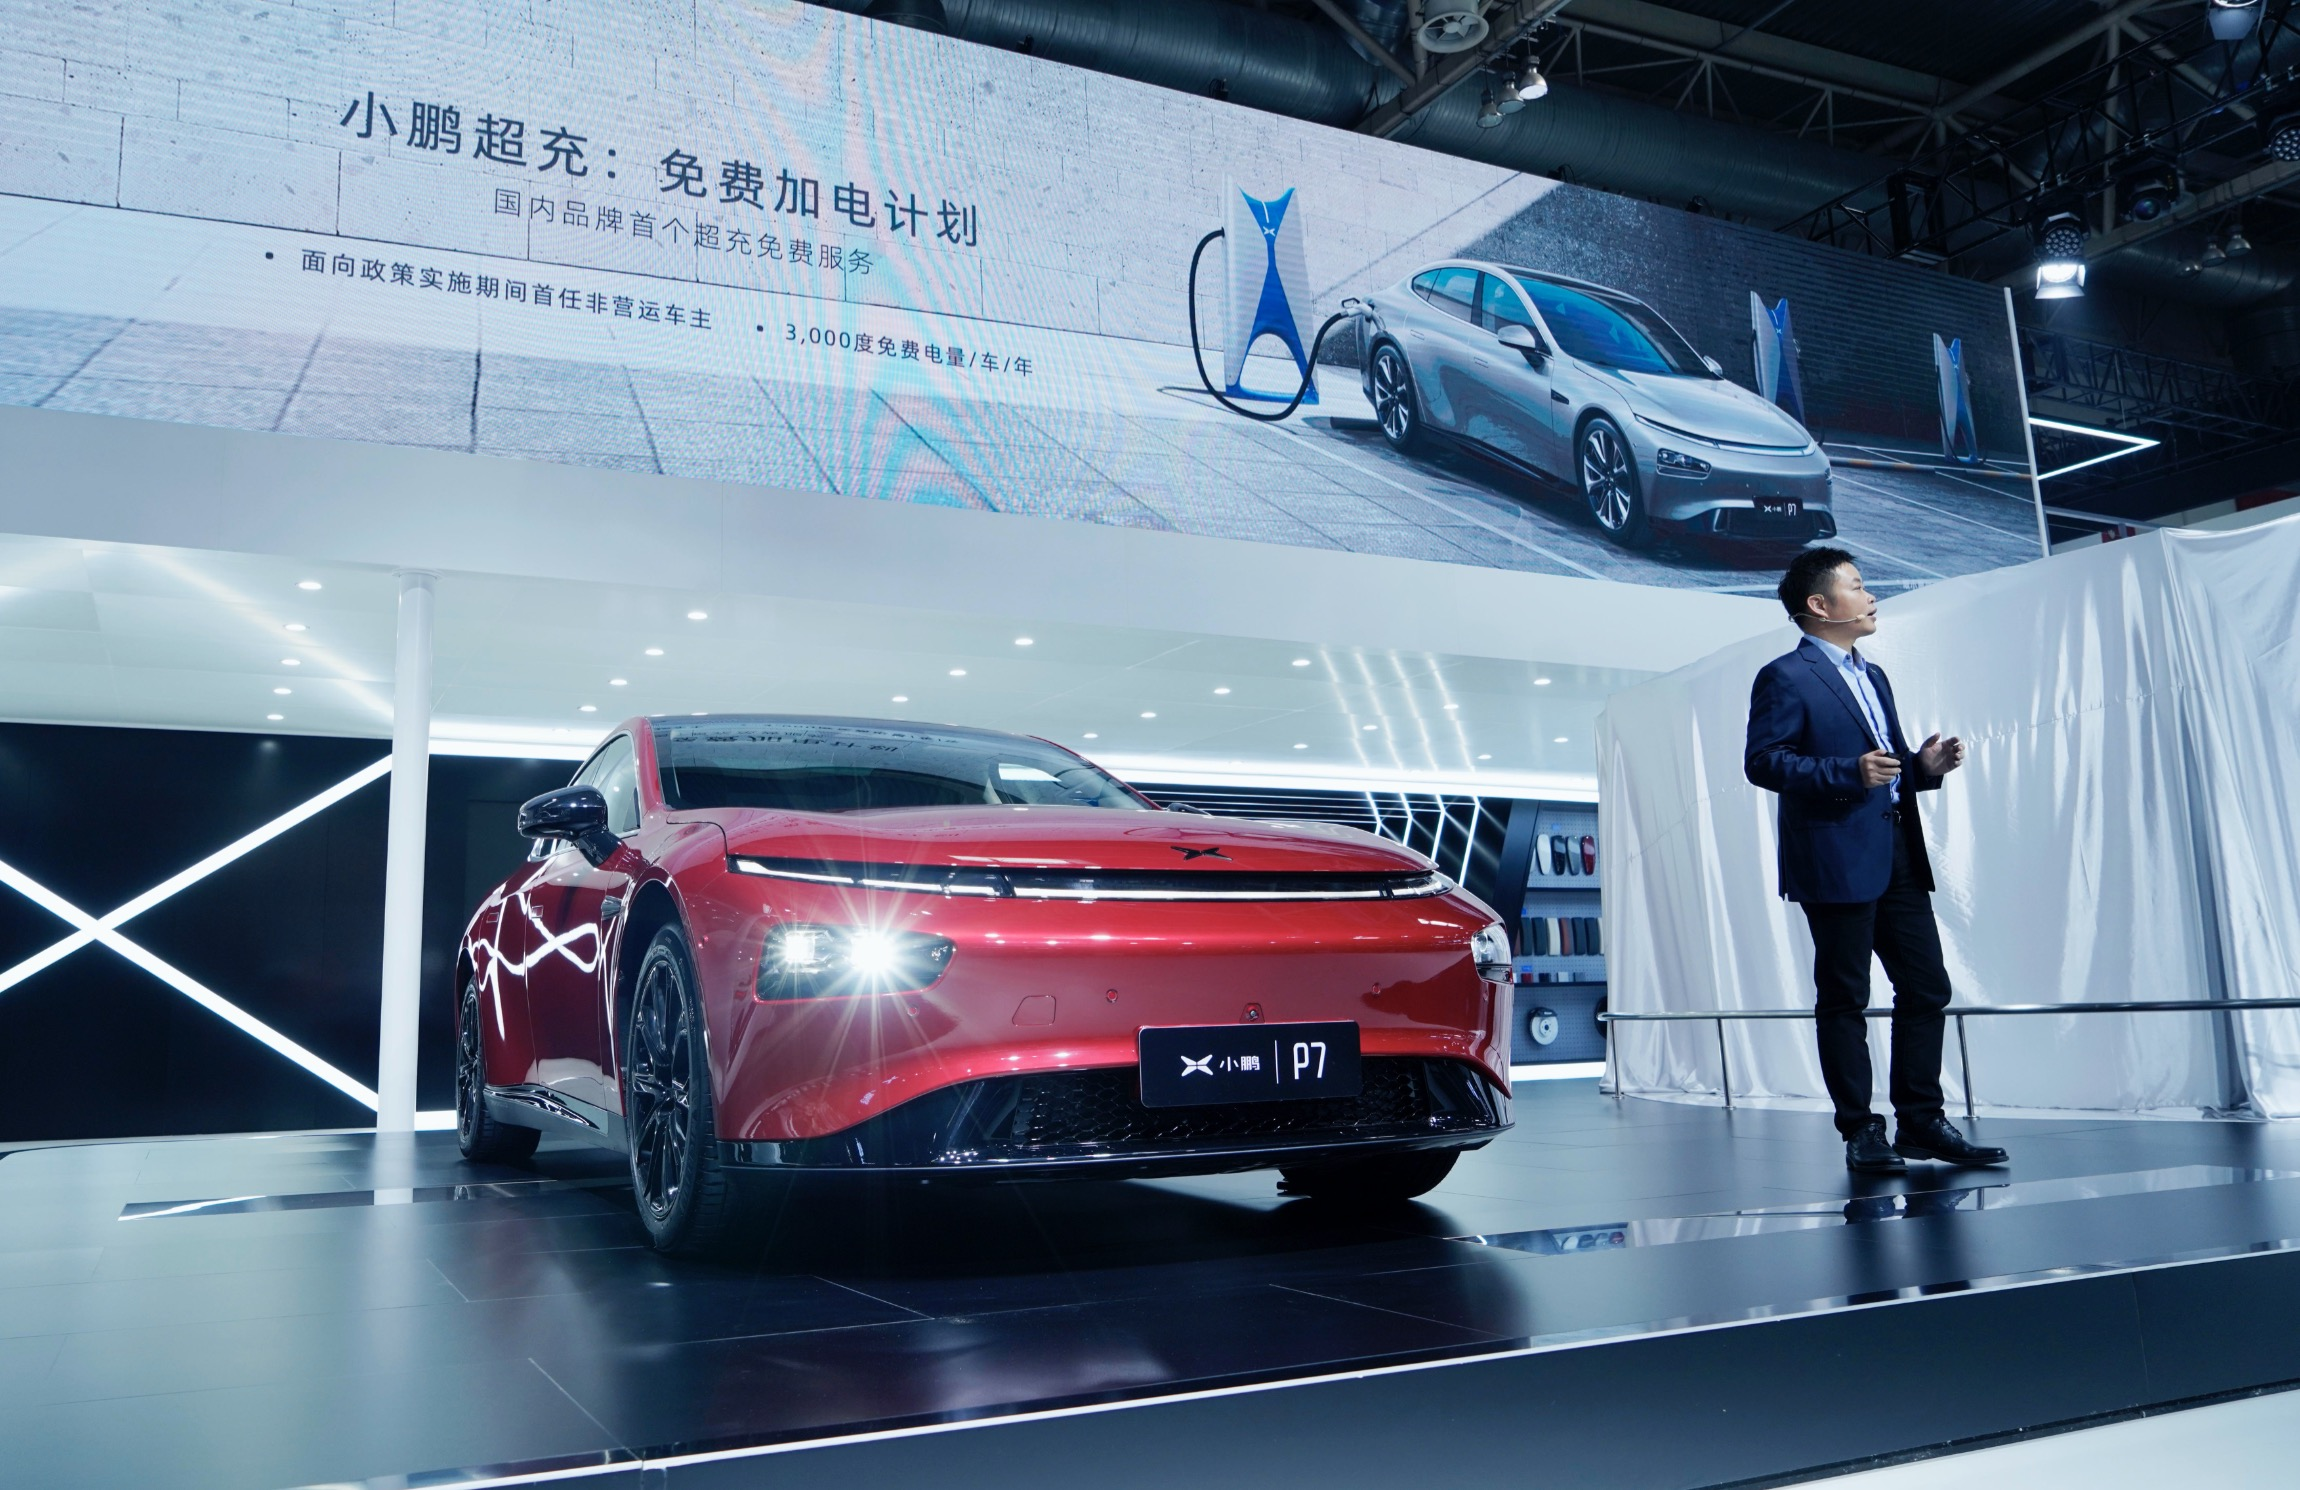 Xpeng announces free charging plan: 3,000 kWh for each car per year-cnTechPost